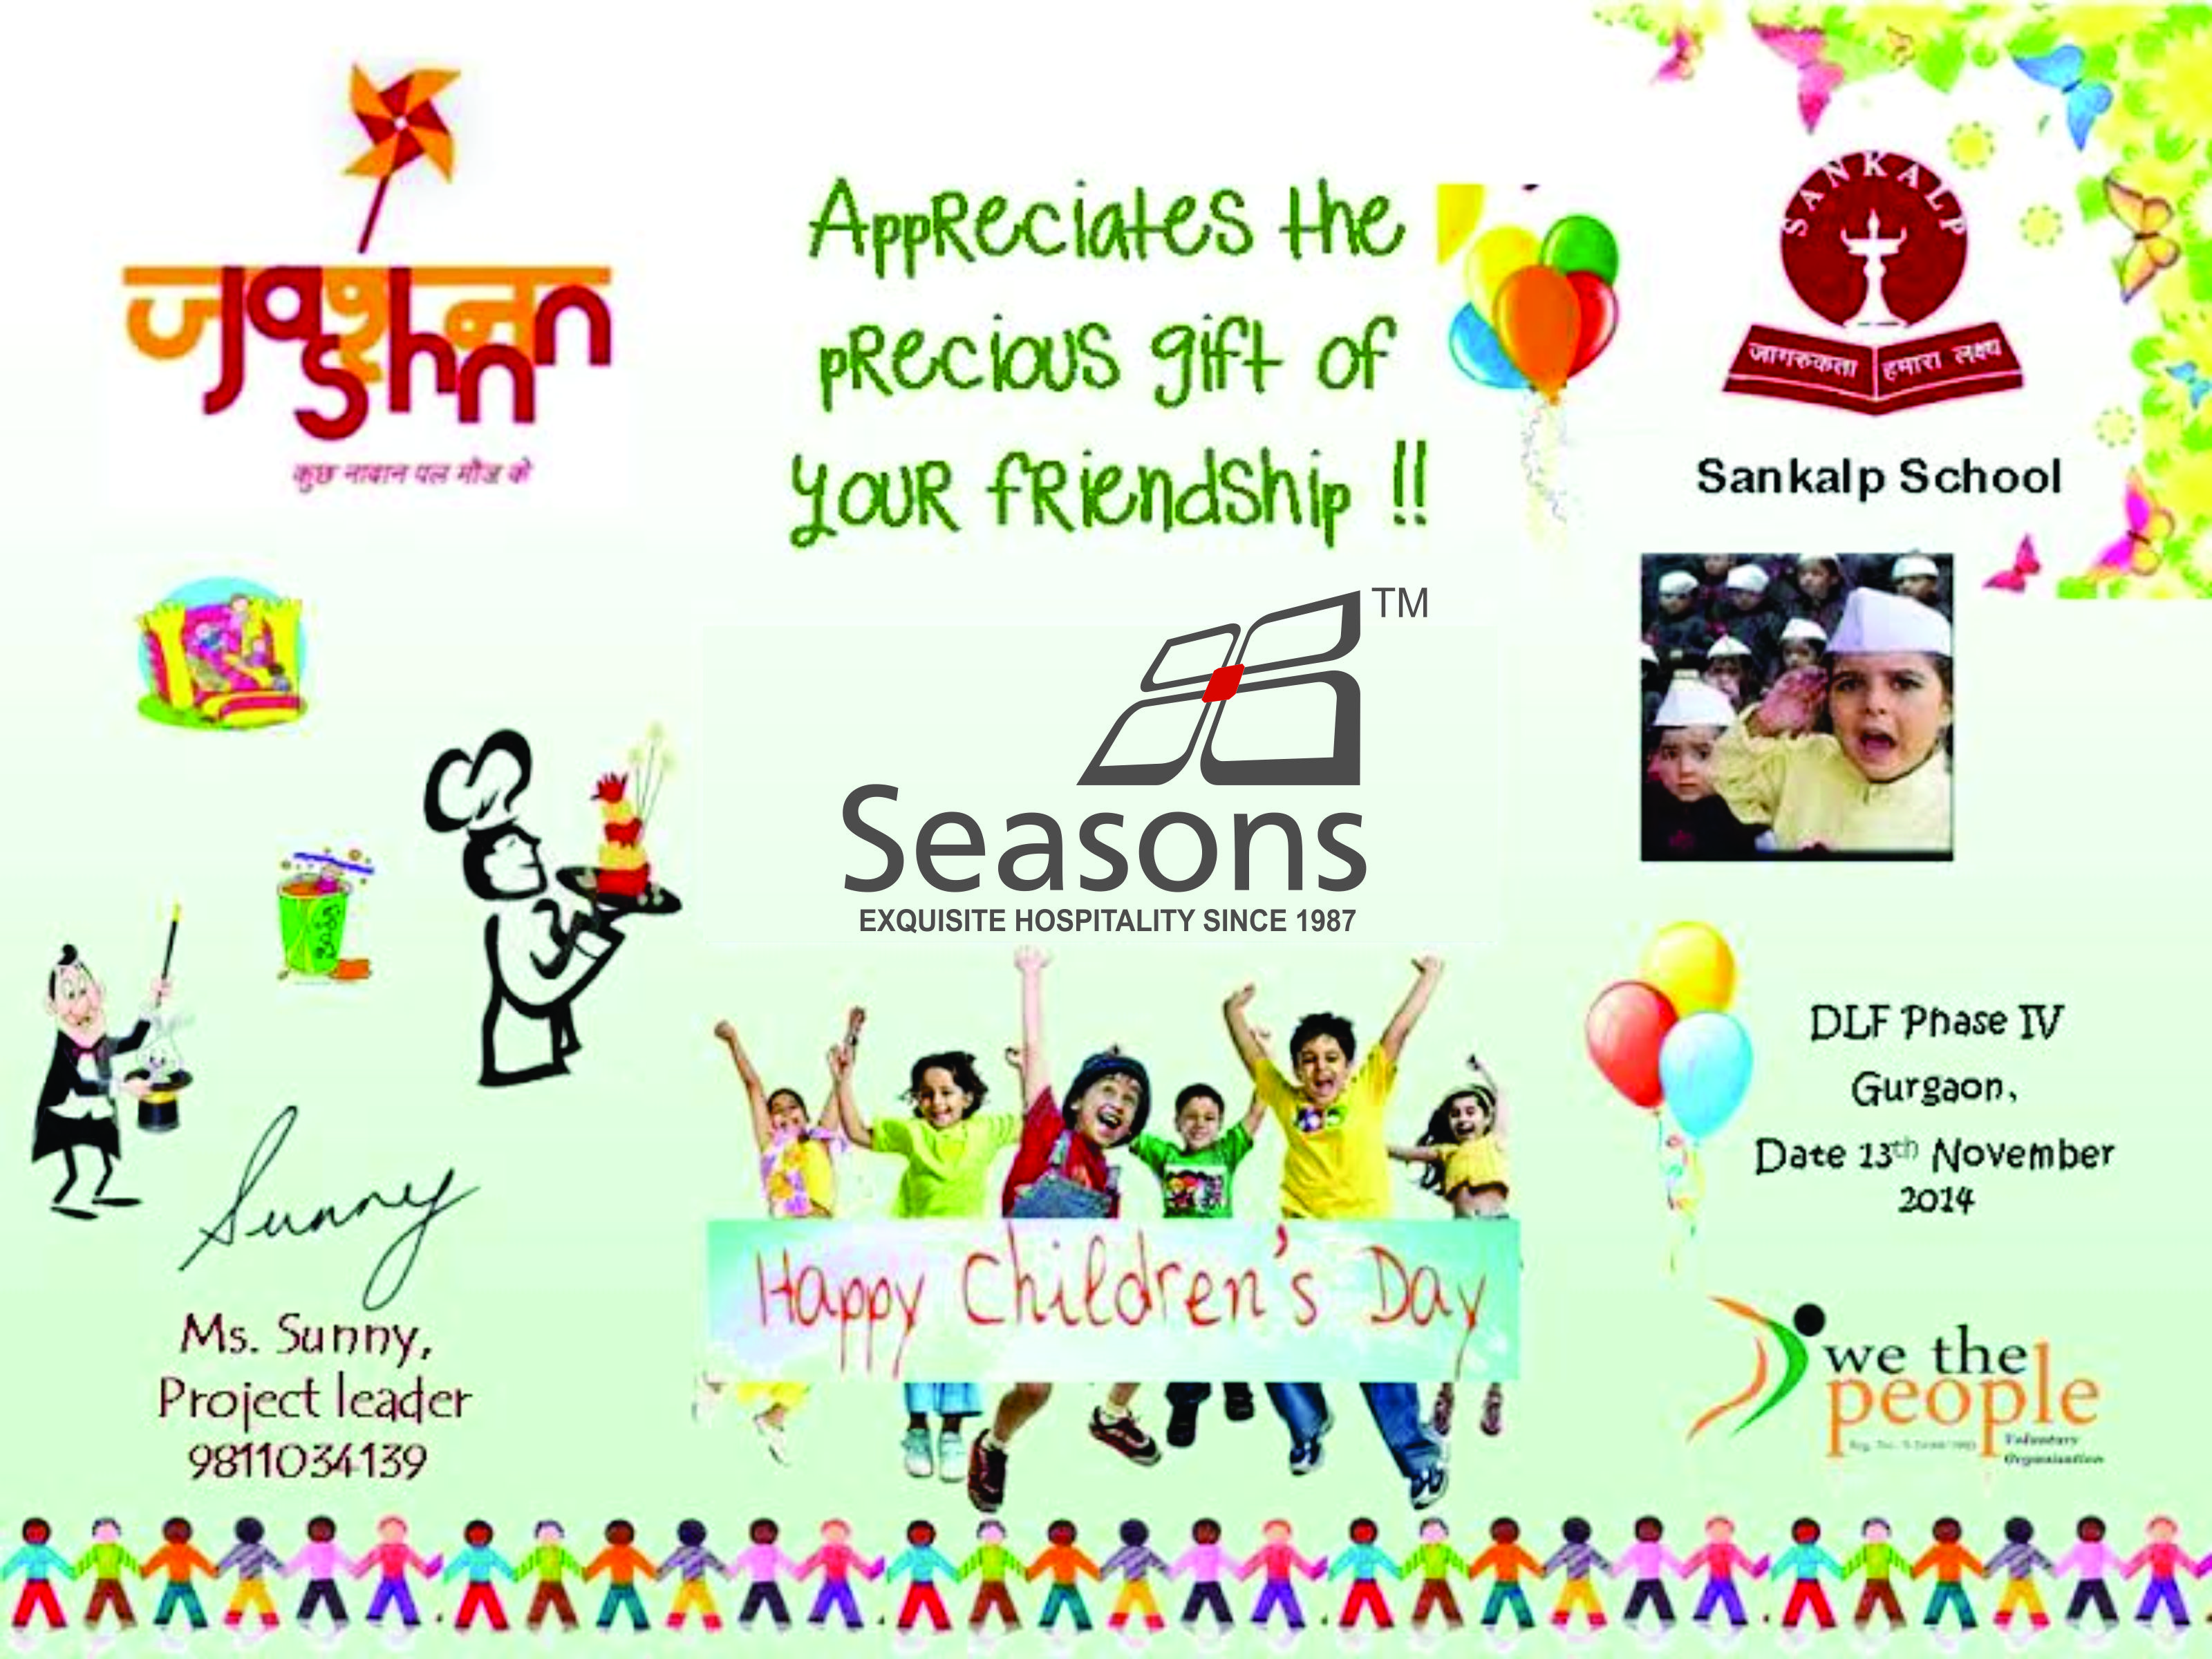 Jashnn - Nov 2014 - Seasons